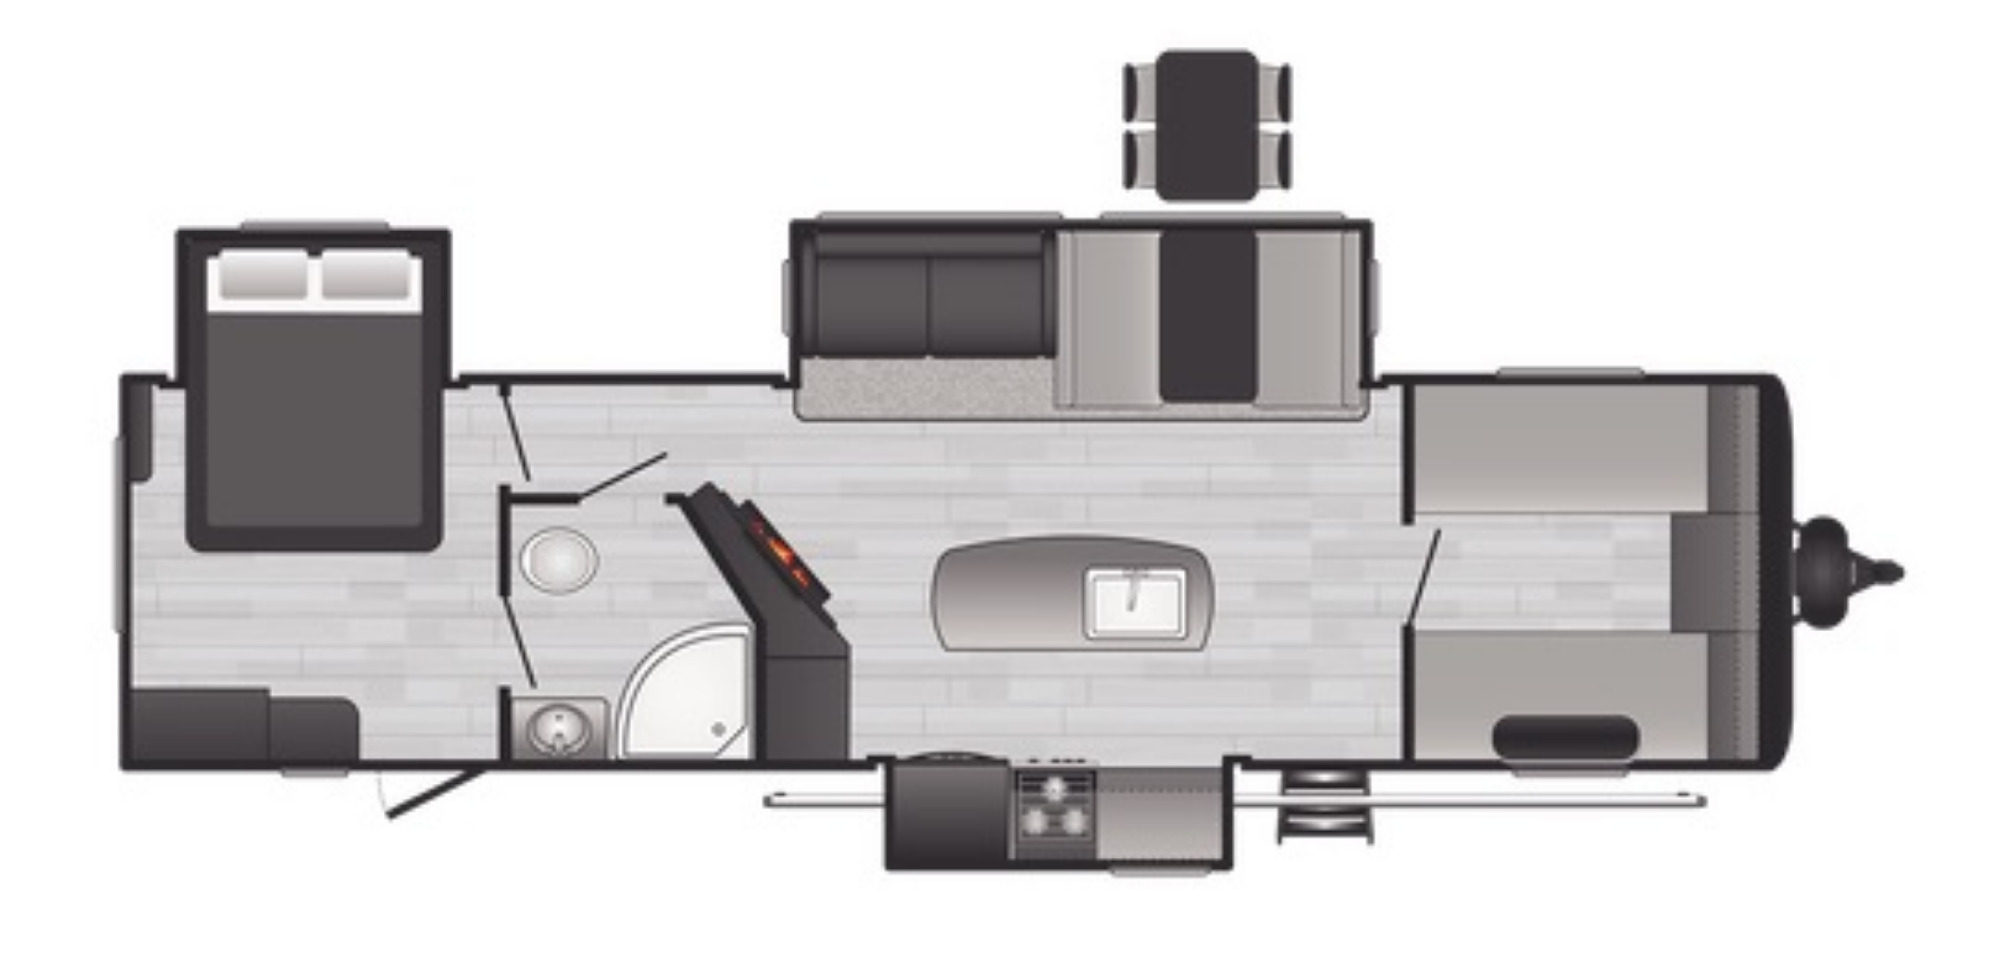 View Floor Plan for 2021 KEYSTONE HIDEOUT 32FBTS